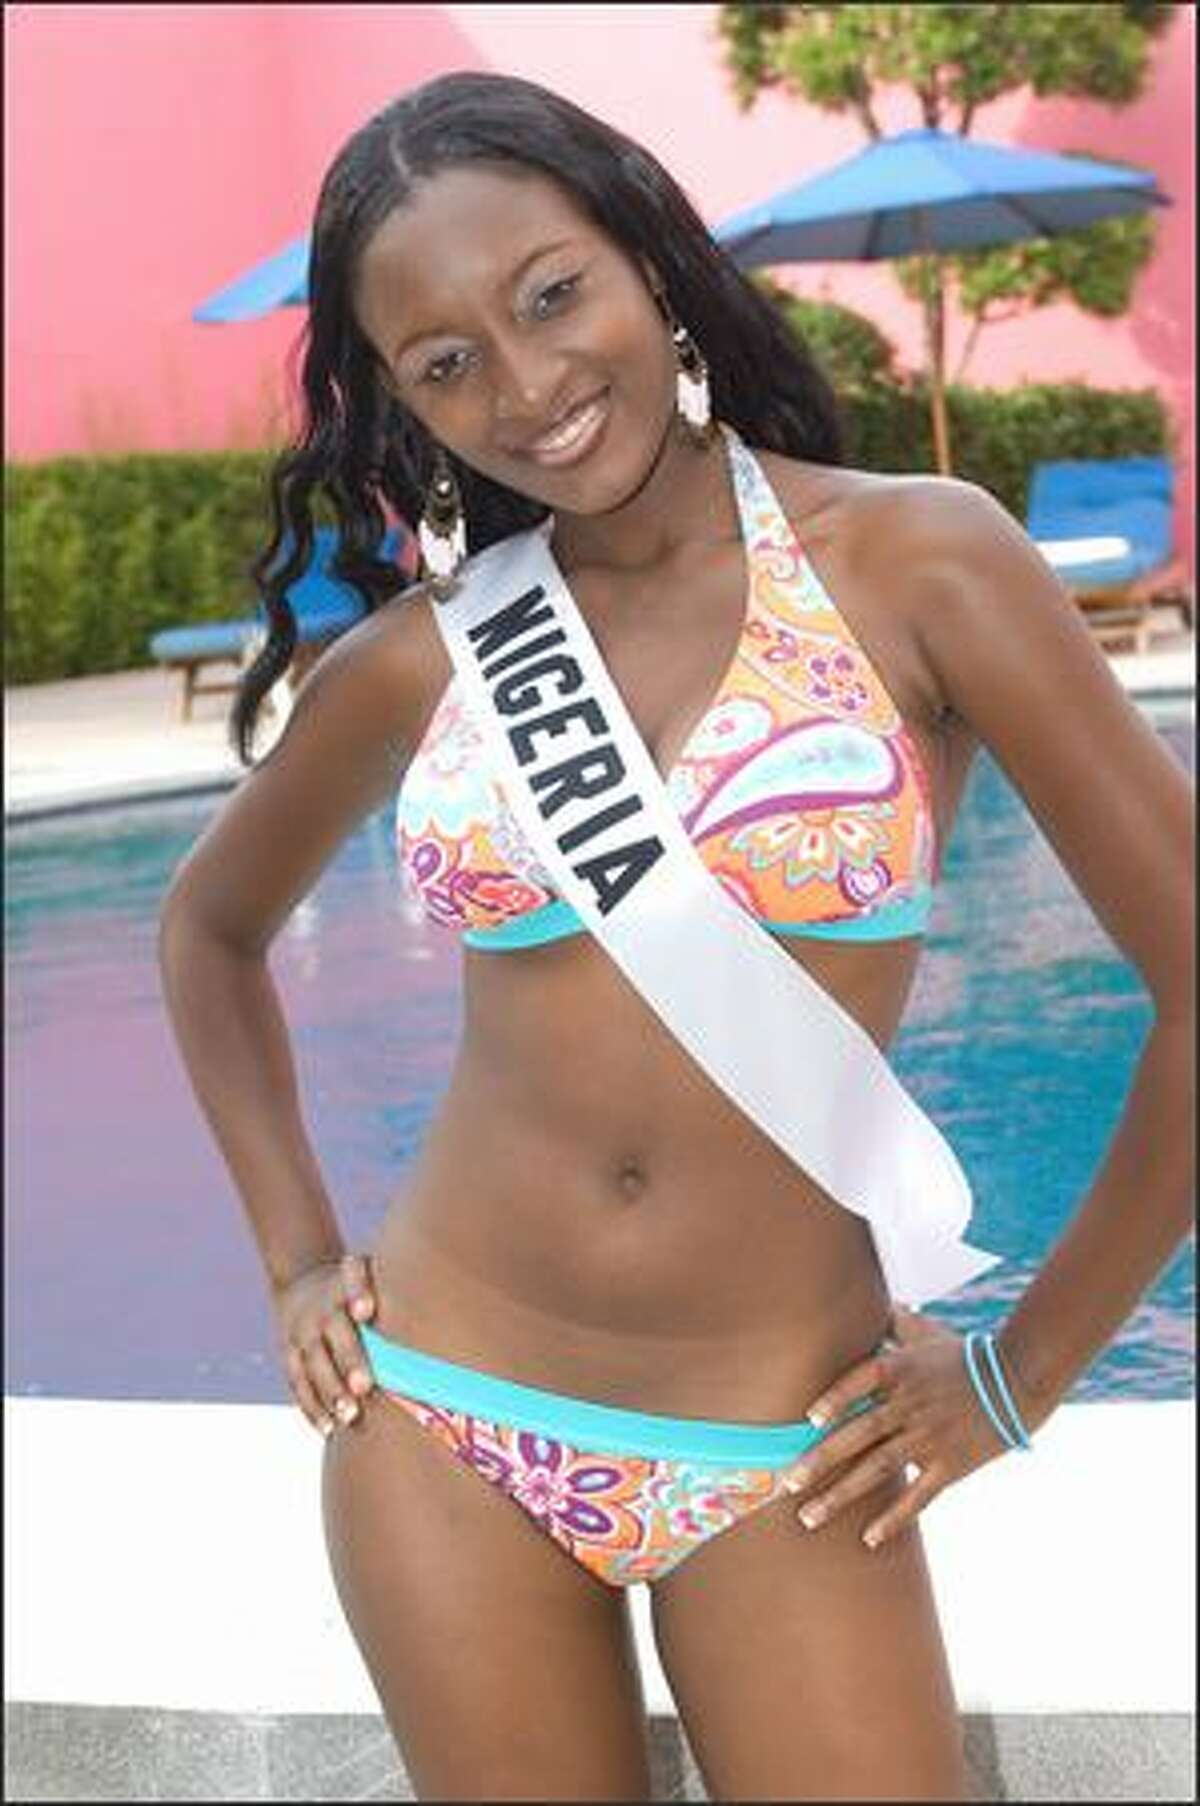 Ebinabo Potts-Johnson, Miss Nigeria 2007, poses in her BSC Swimwear Thailand swimsuit at the Camino Real Mexico in Mexico City on May 16.